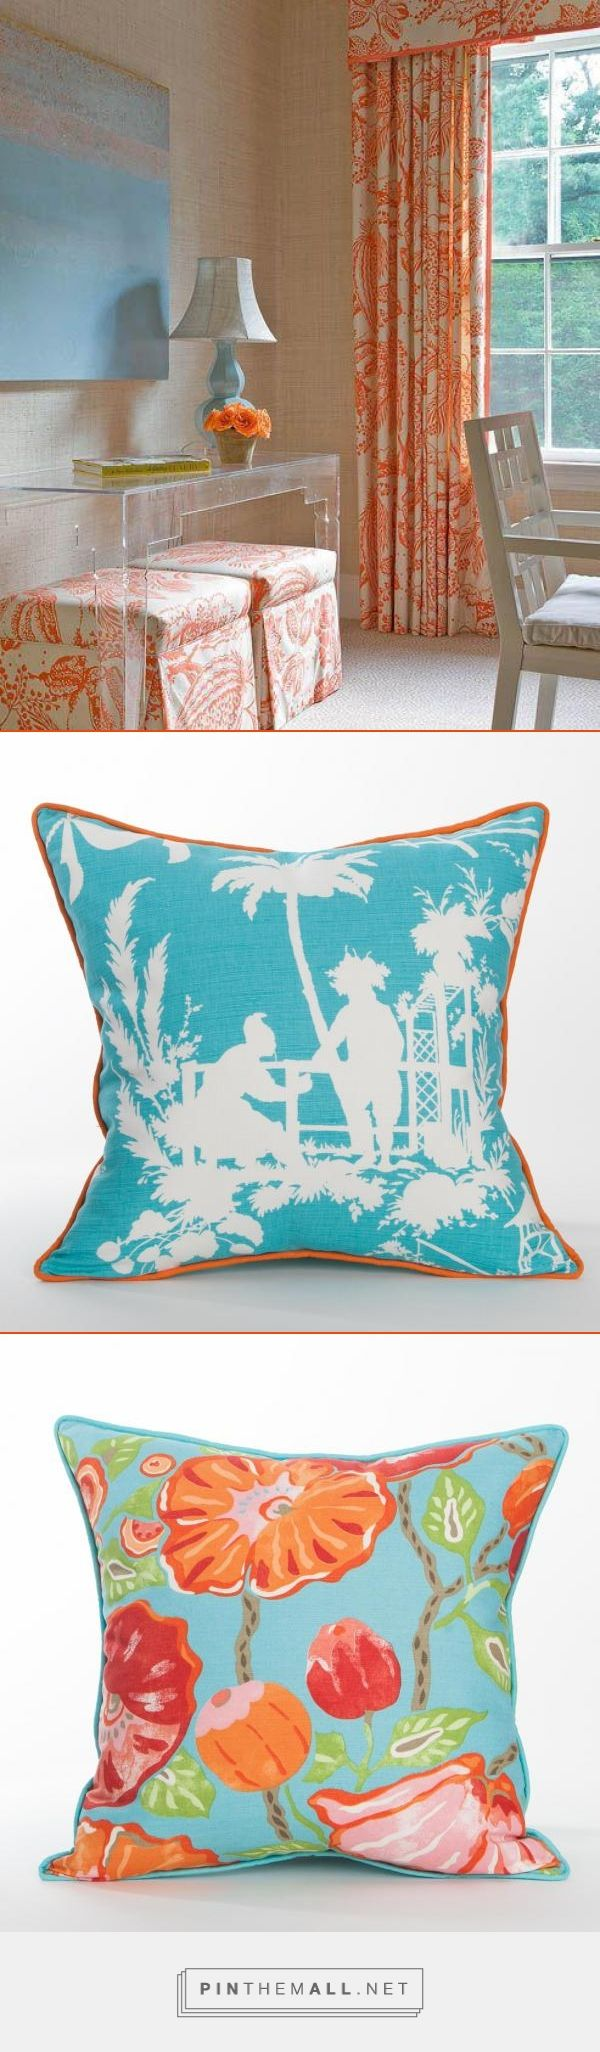 Inspiration -Palm Beach Style @ Coastal Home Pillows -